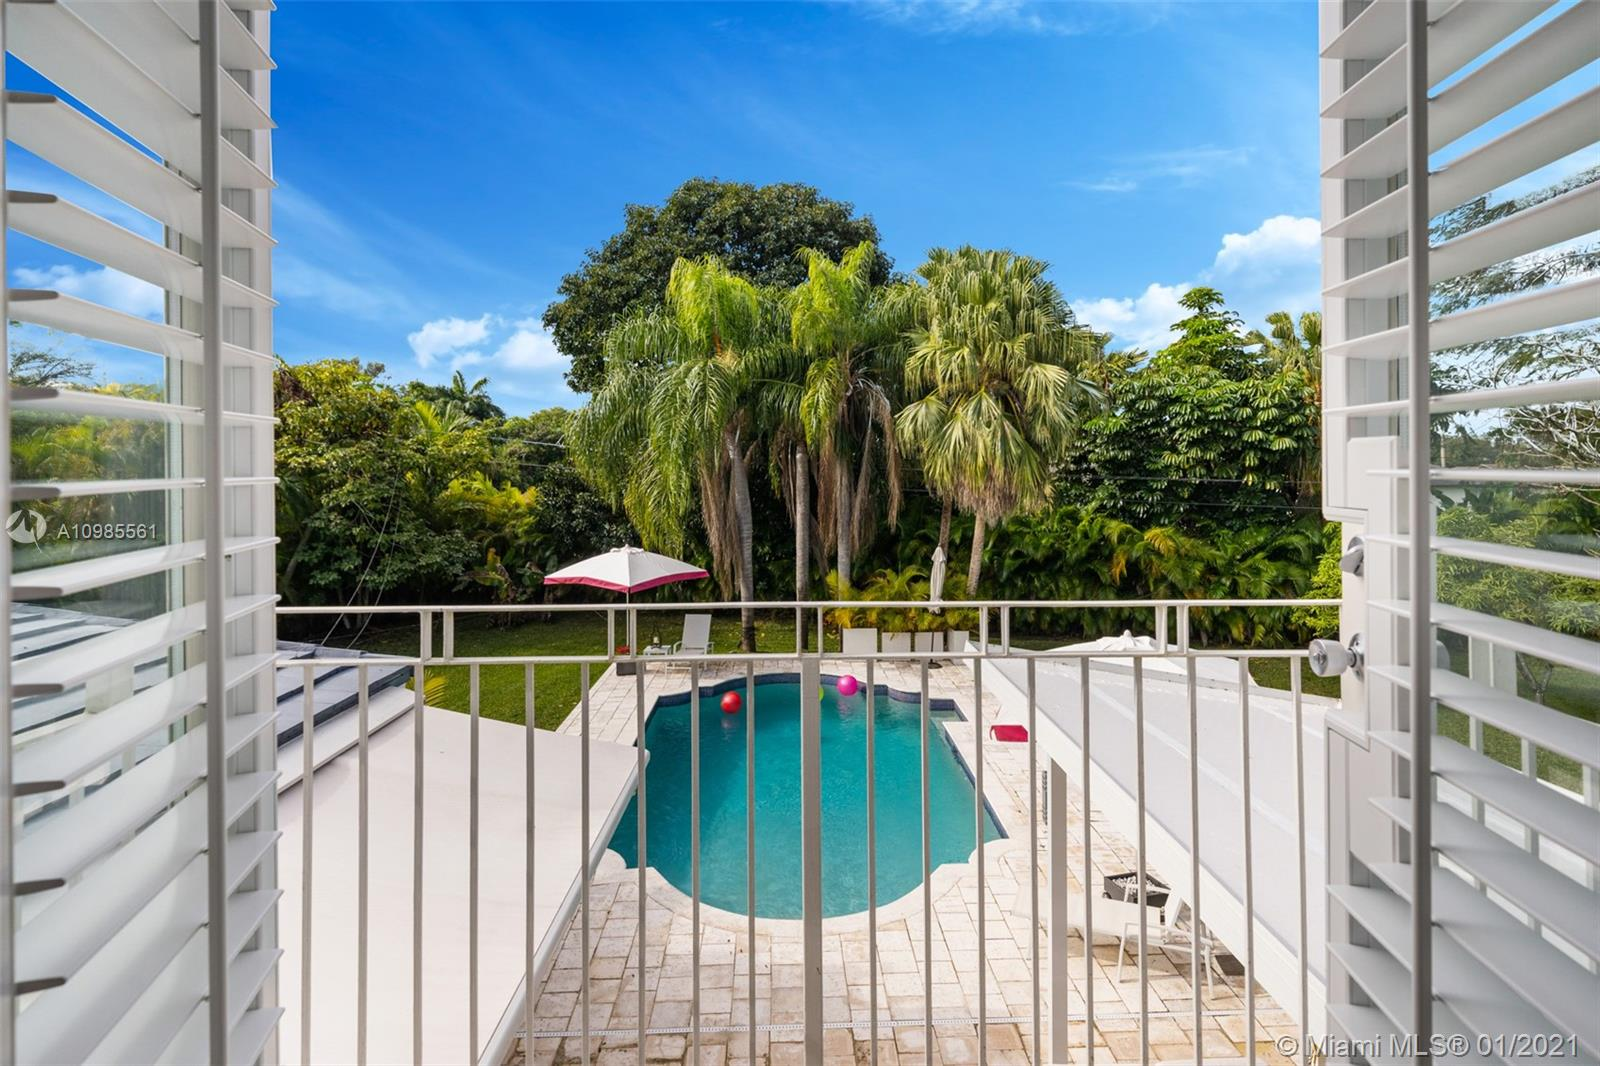 11900 SW 70th Ave, Pinecrest, Florida 33156, 4 Bedrooms Bedrooms, ,4 BathroomsBathrooms,Residential,For Sale,11900 SW 70th Ave,A10985561